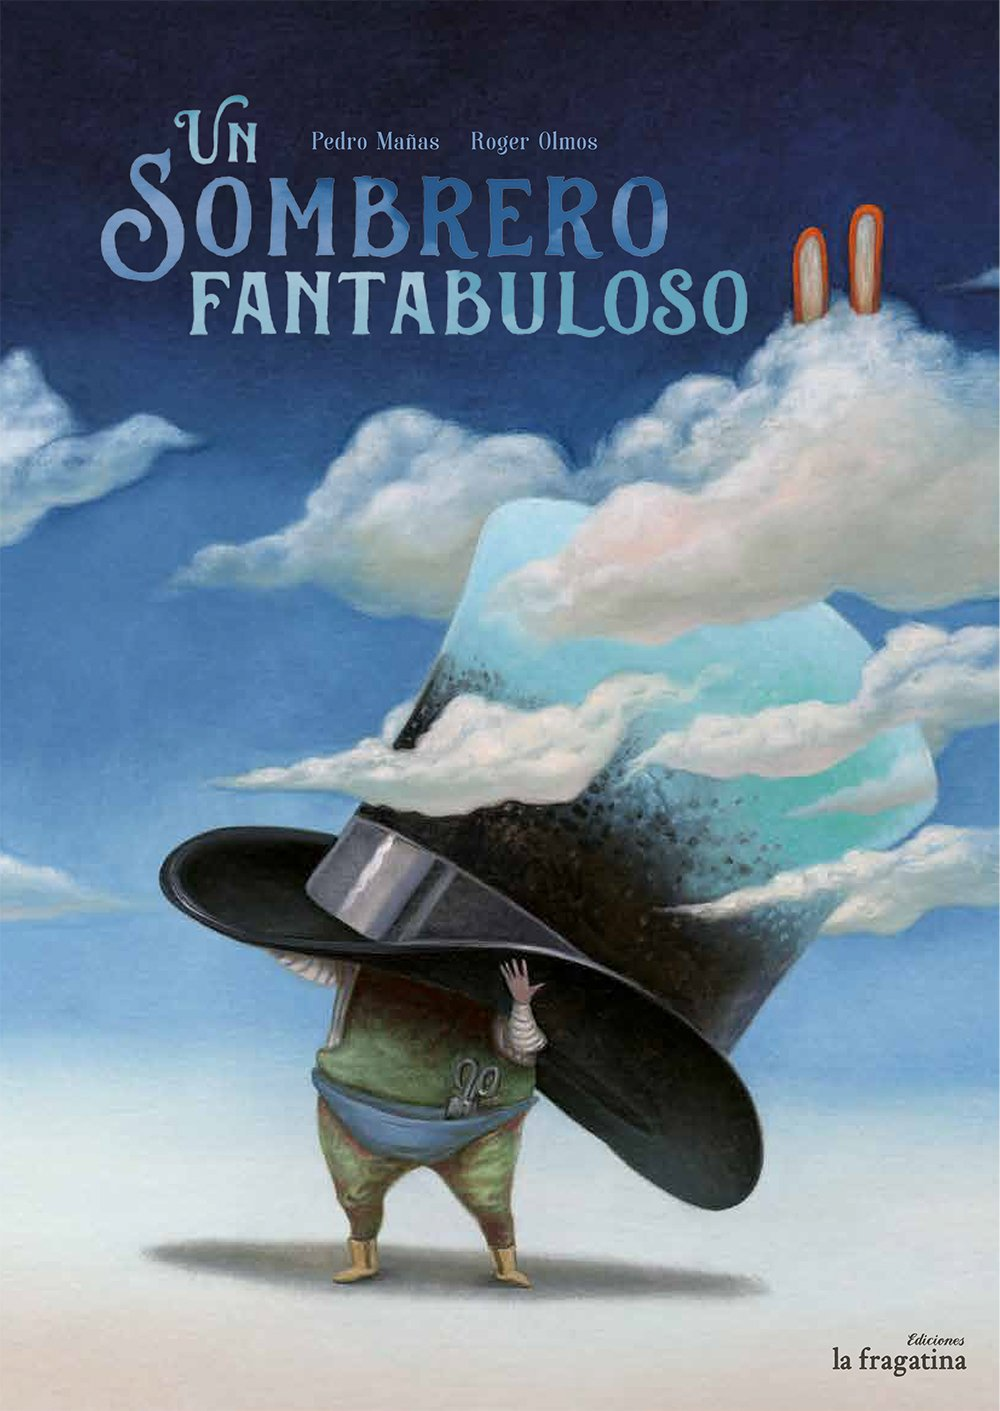 Un sombrero fantabuloso (Spanish Edition) PDF Text fb2 book